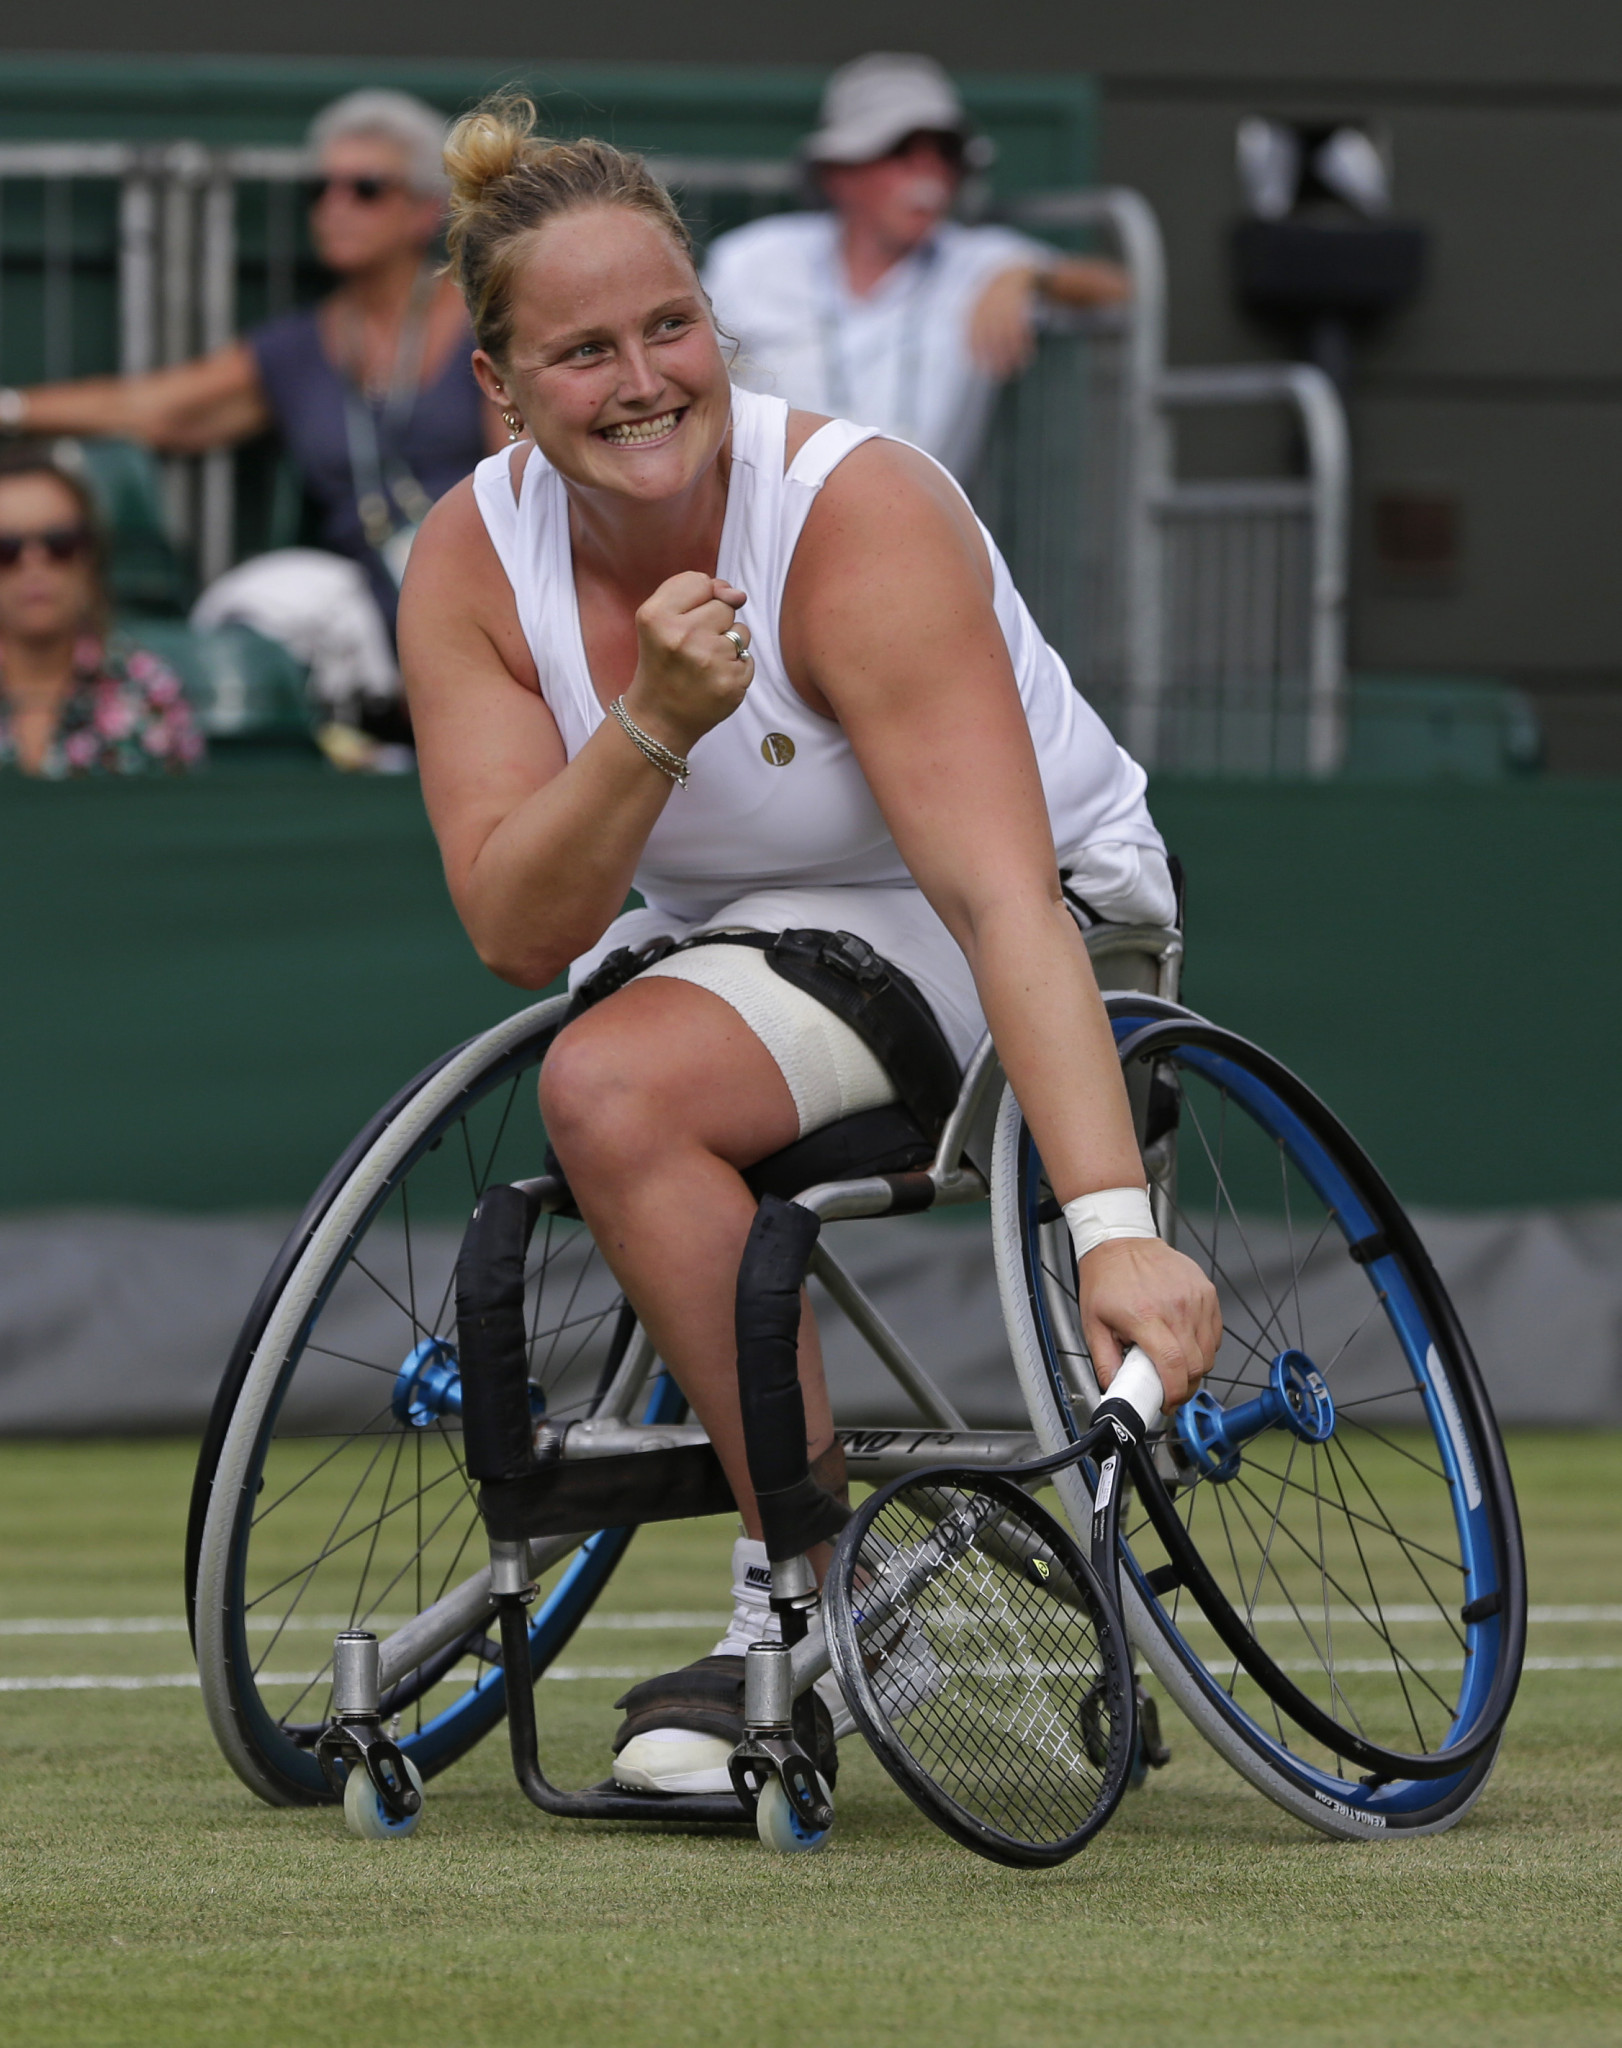 Anniek van Koot won a tight semi-final to earn a place in the Wimbledon women's wheelchair singles final against fellow Dutchwoman Diede de Groot, the defending champion ©Getty Images